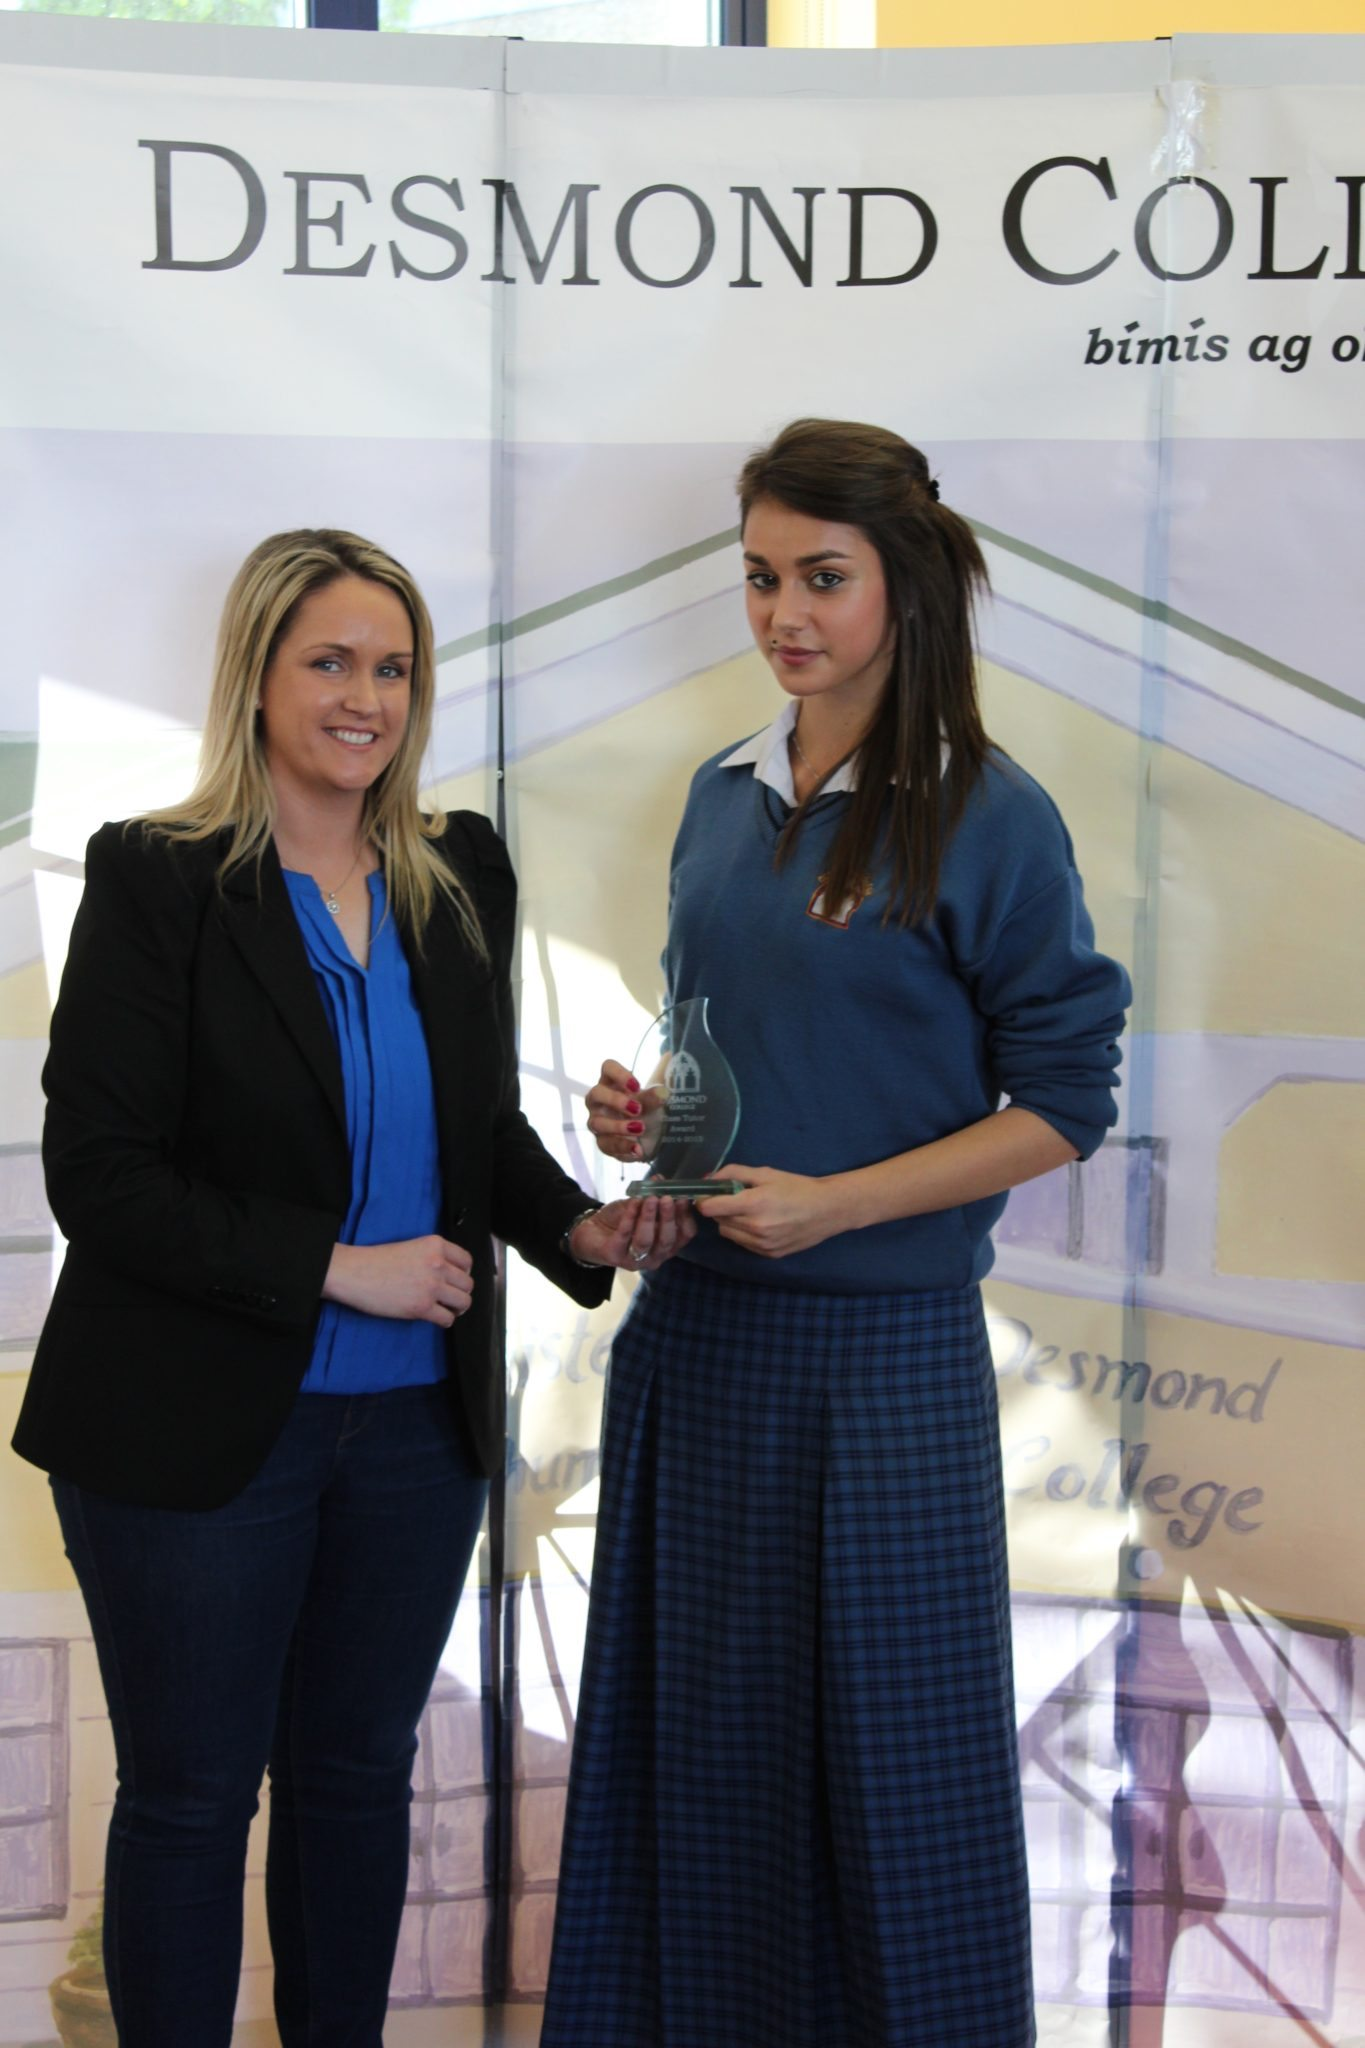 Desmond College Student Awards: May 2015: TUTOR AWARDS 2nd Year : Ms Creed with Laura Papierowska